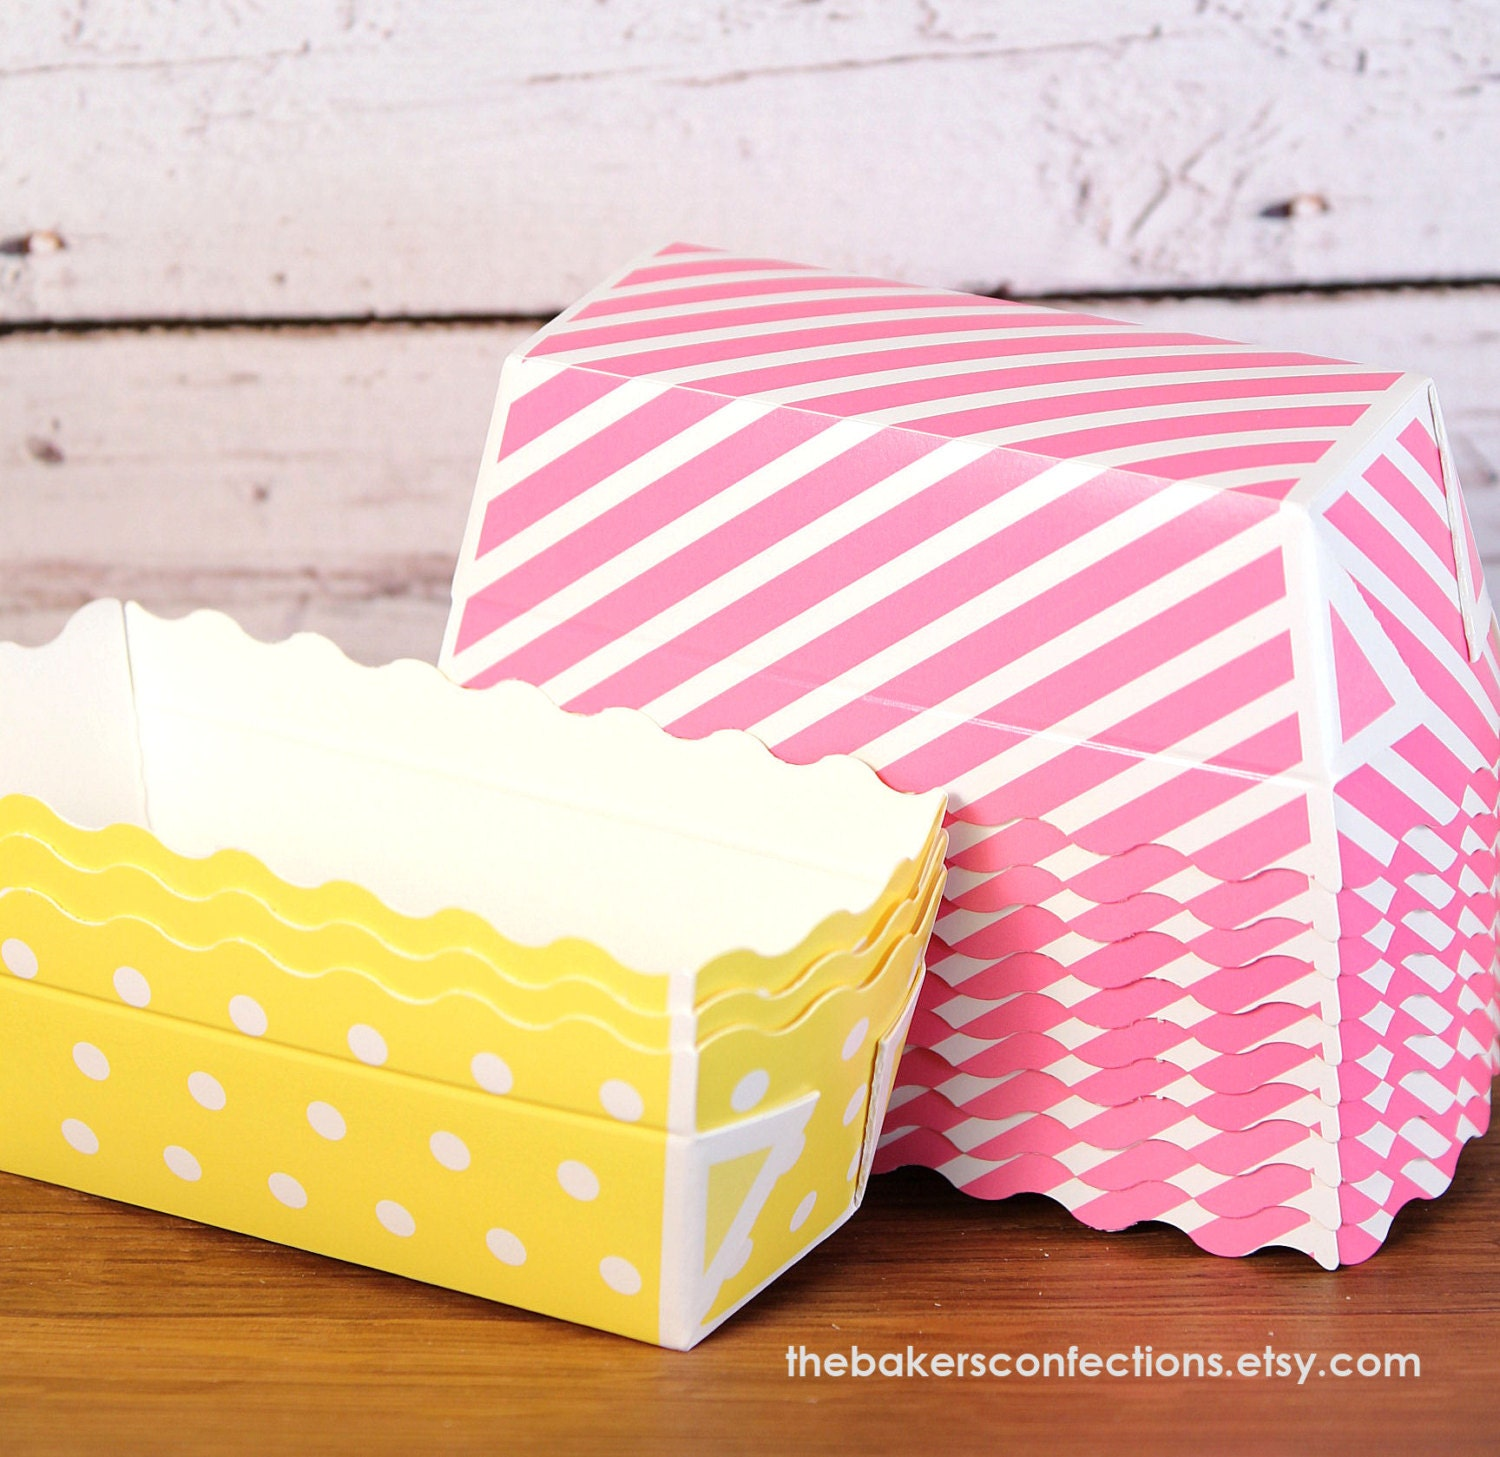 Mini Paper Loaf Baking Pans In Yellow Polka Dot And Pink